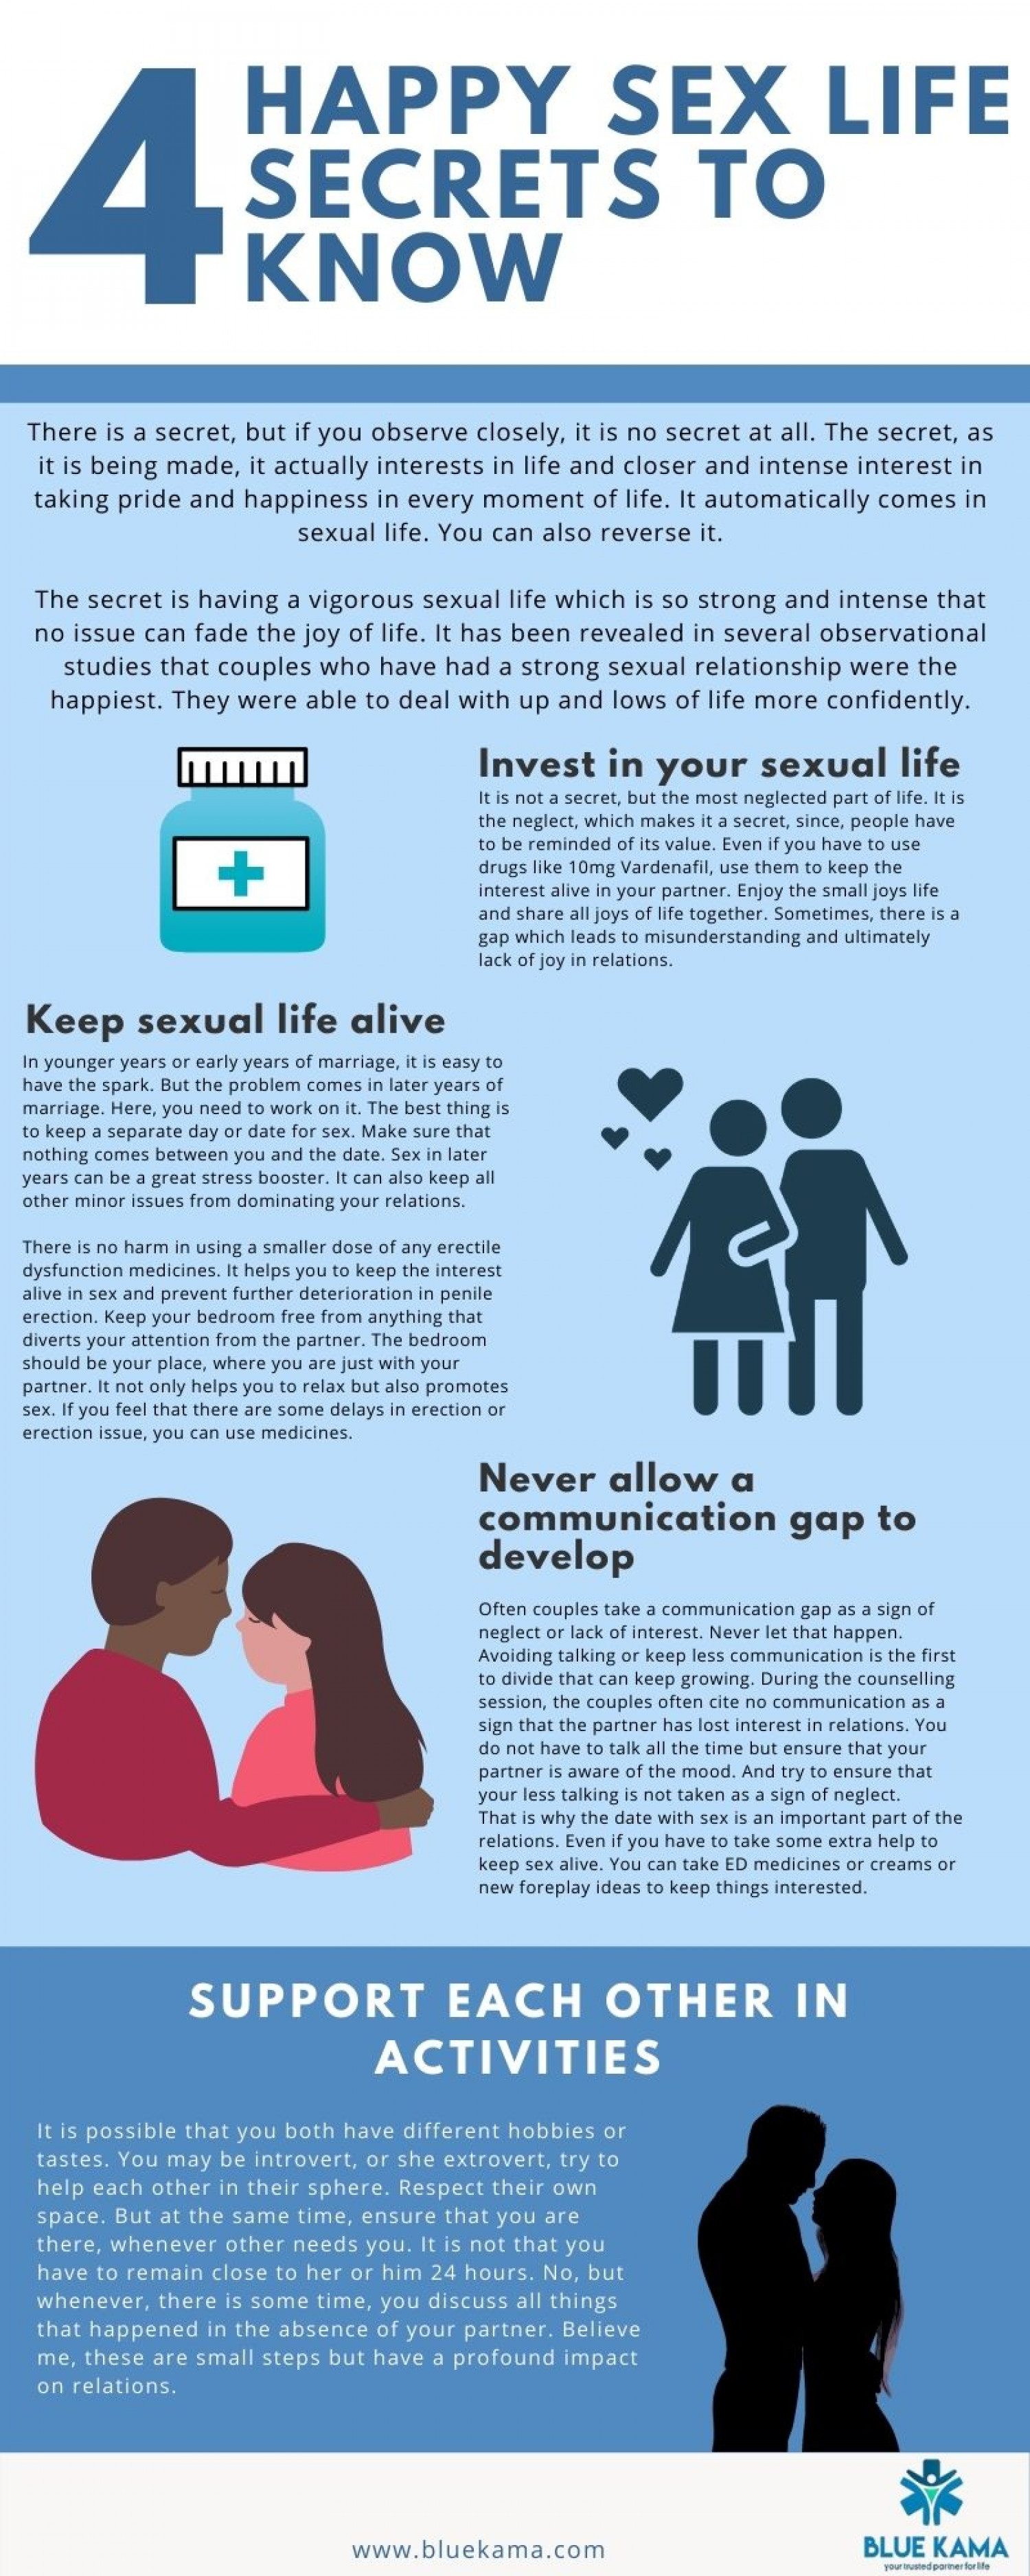 4 Happy Sex Life Secrets to Know Infographic